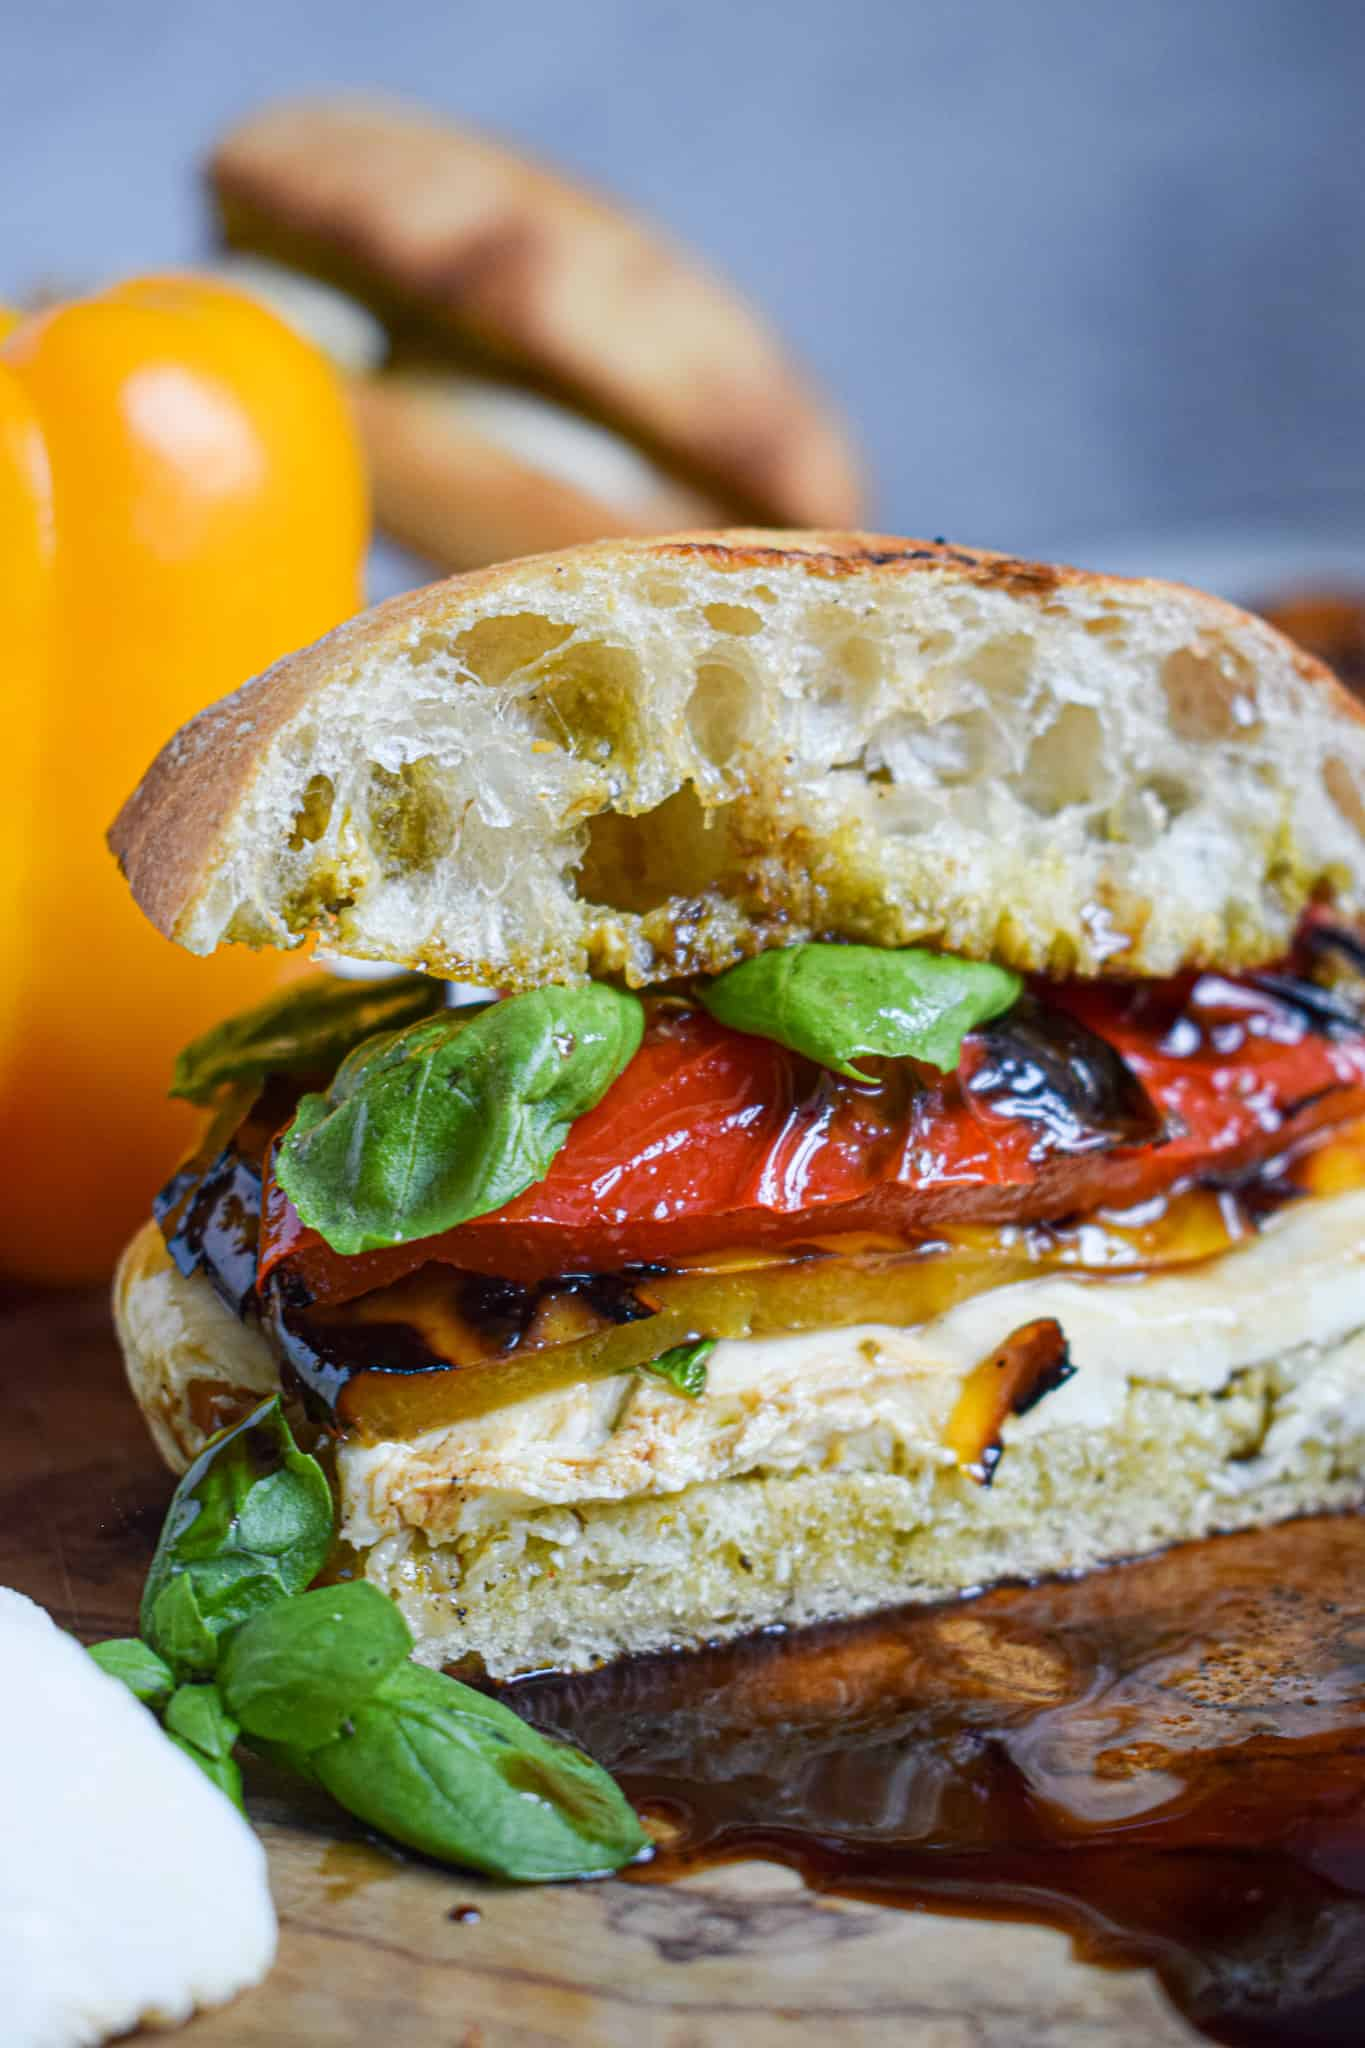 Grille bell pepper and mozzarella sandwich with fresh basil and aged balsamic vinegar